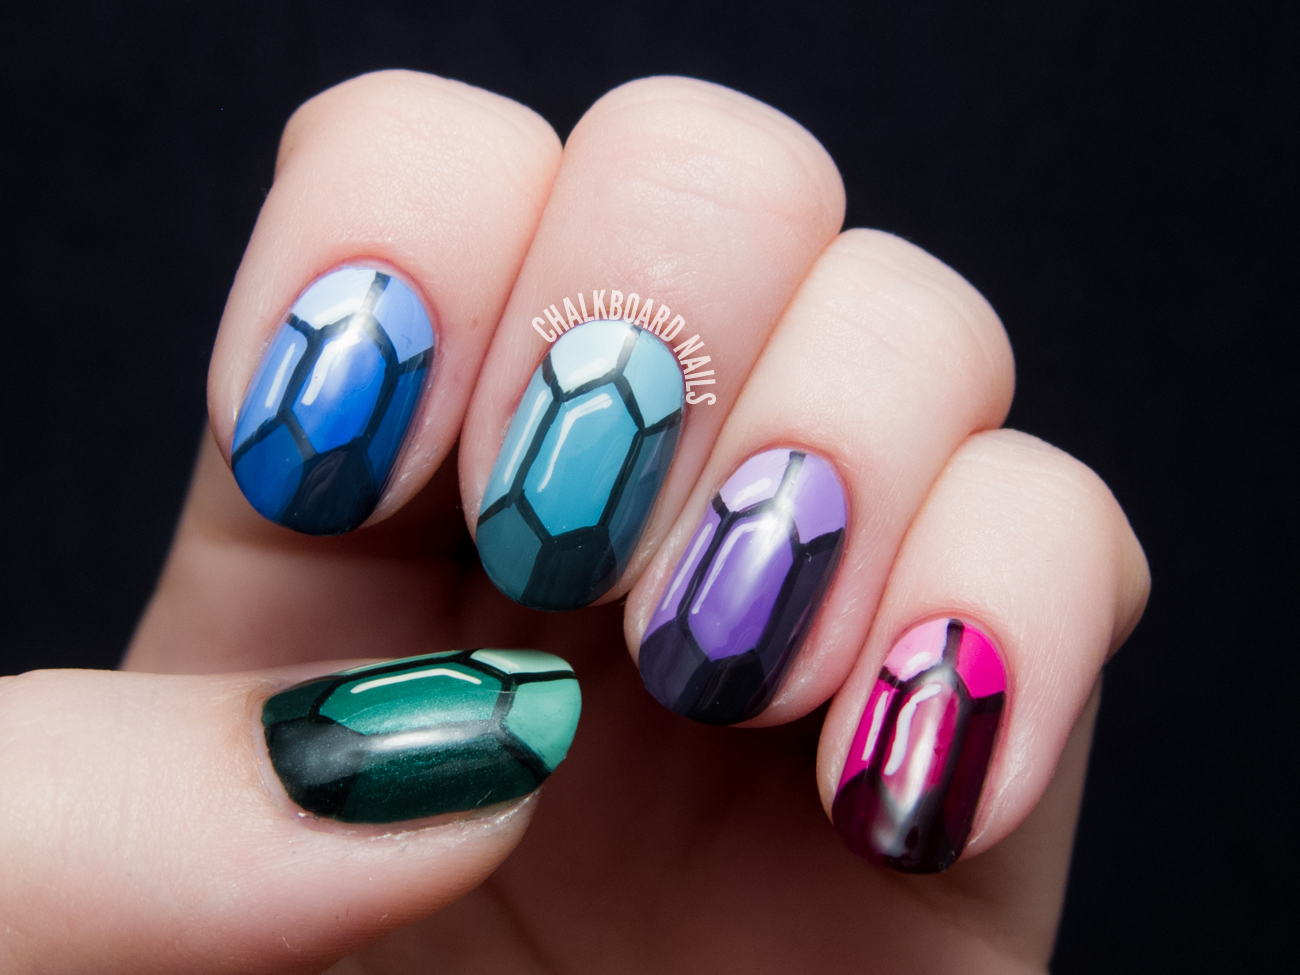 April 2014 | Chalkboard Nails | Nail Art Blog